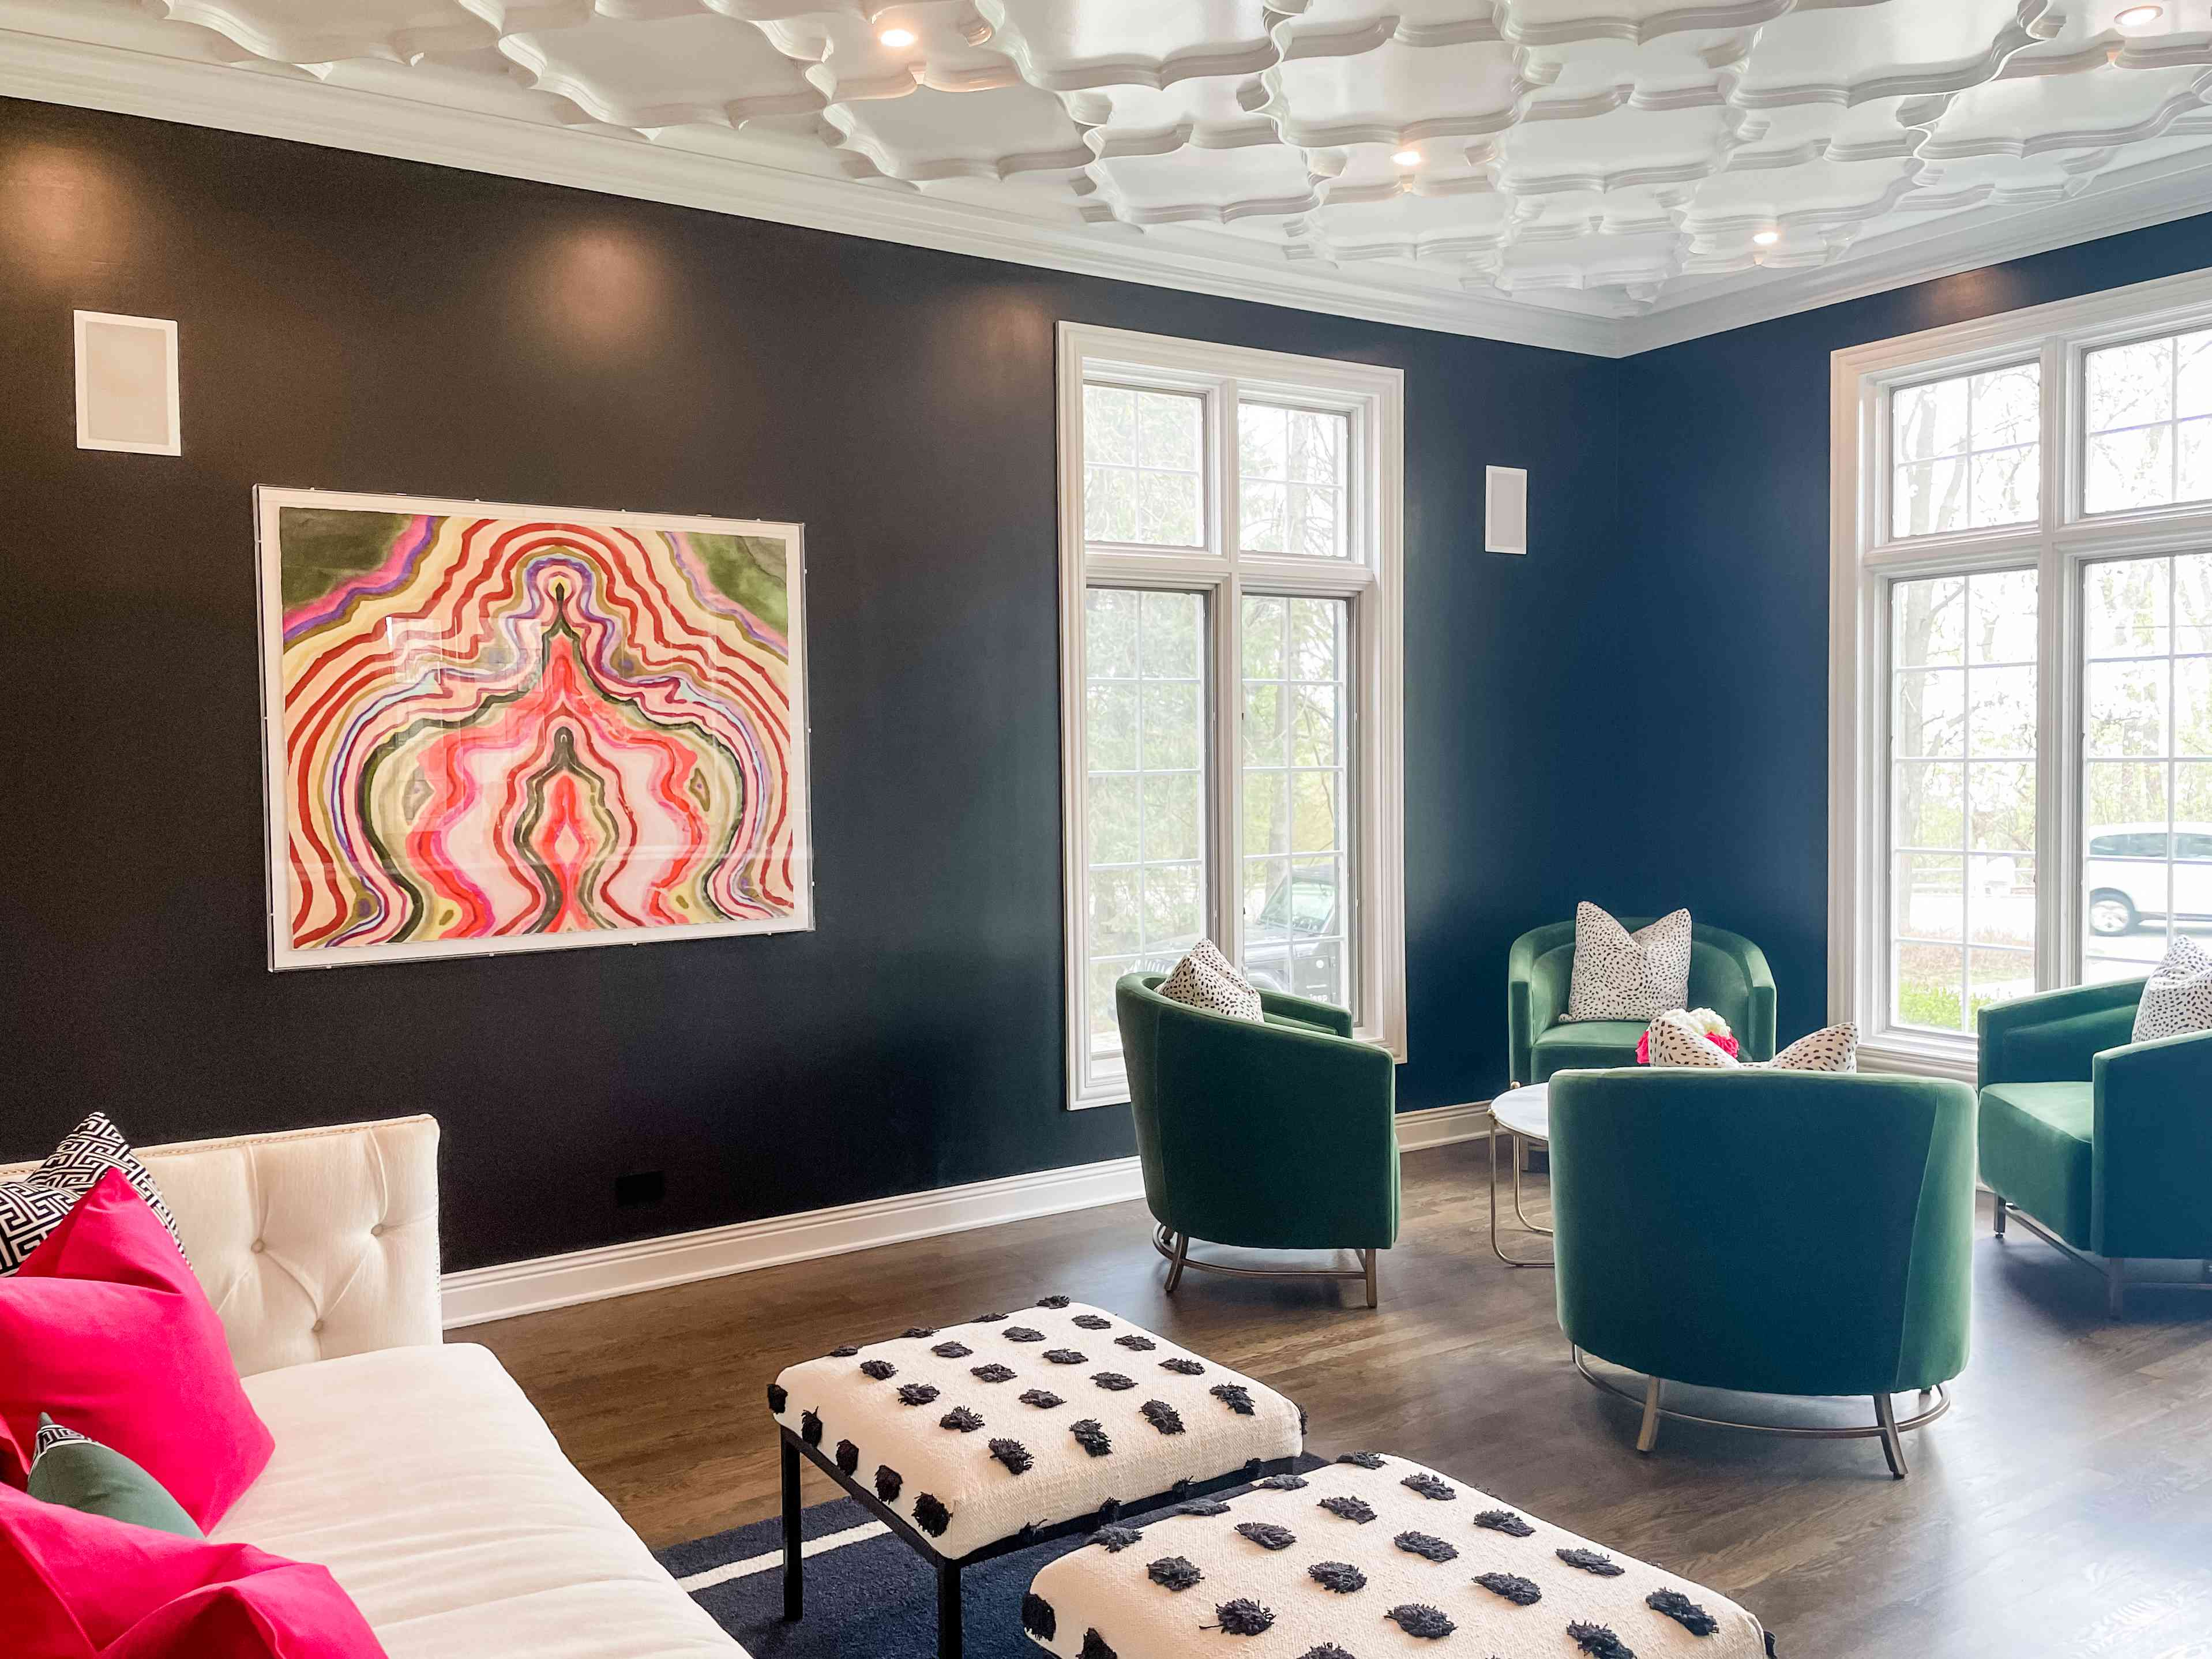 Art hung on wall 57 inches above the floor by Kristine Kohut